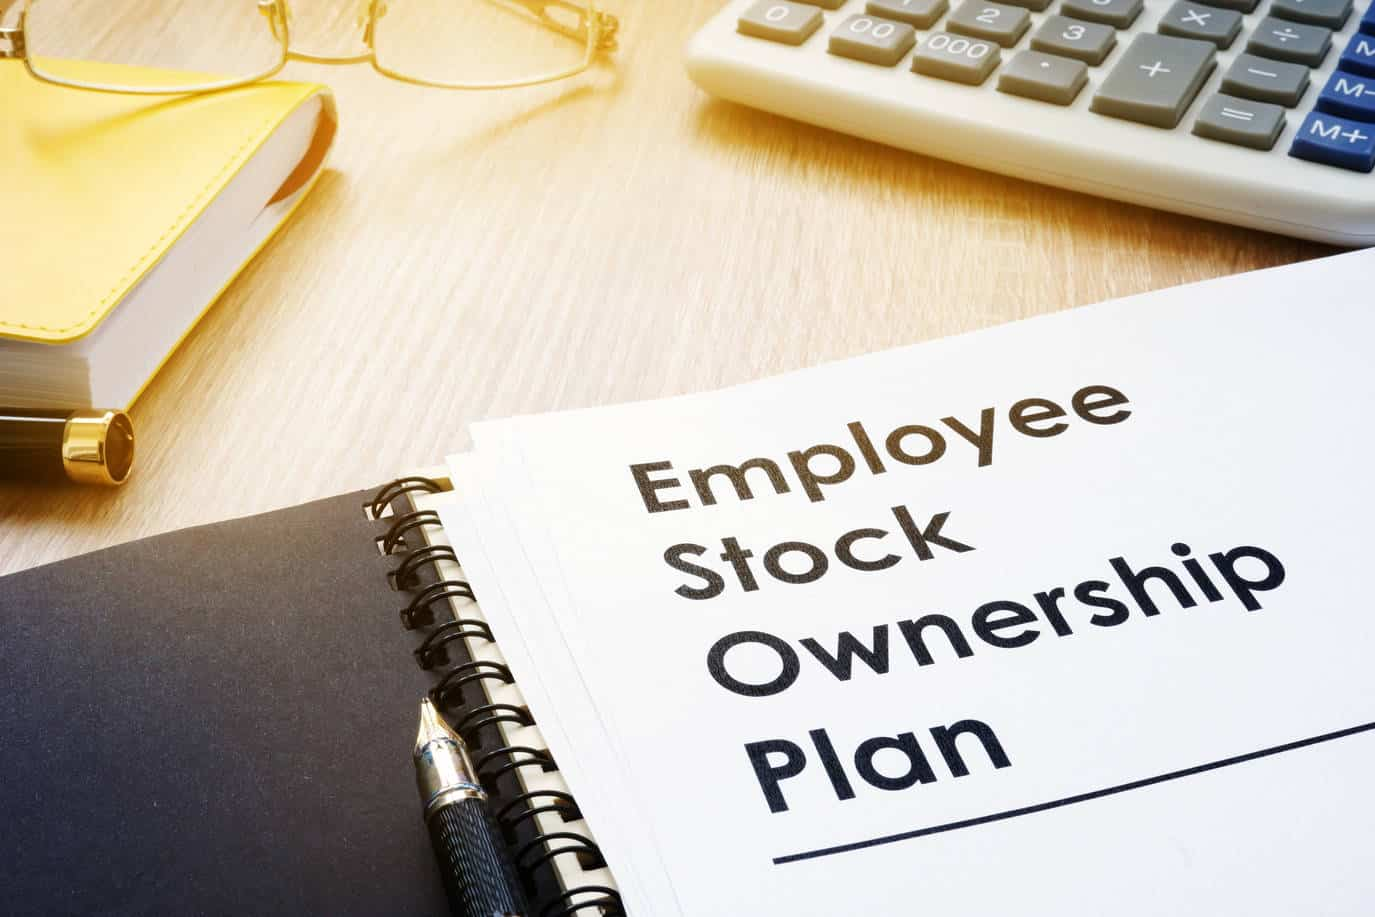 10 Tips About Stock Option Agreements When Evaluating a Job Offer